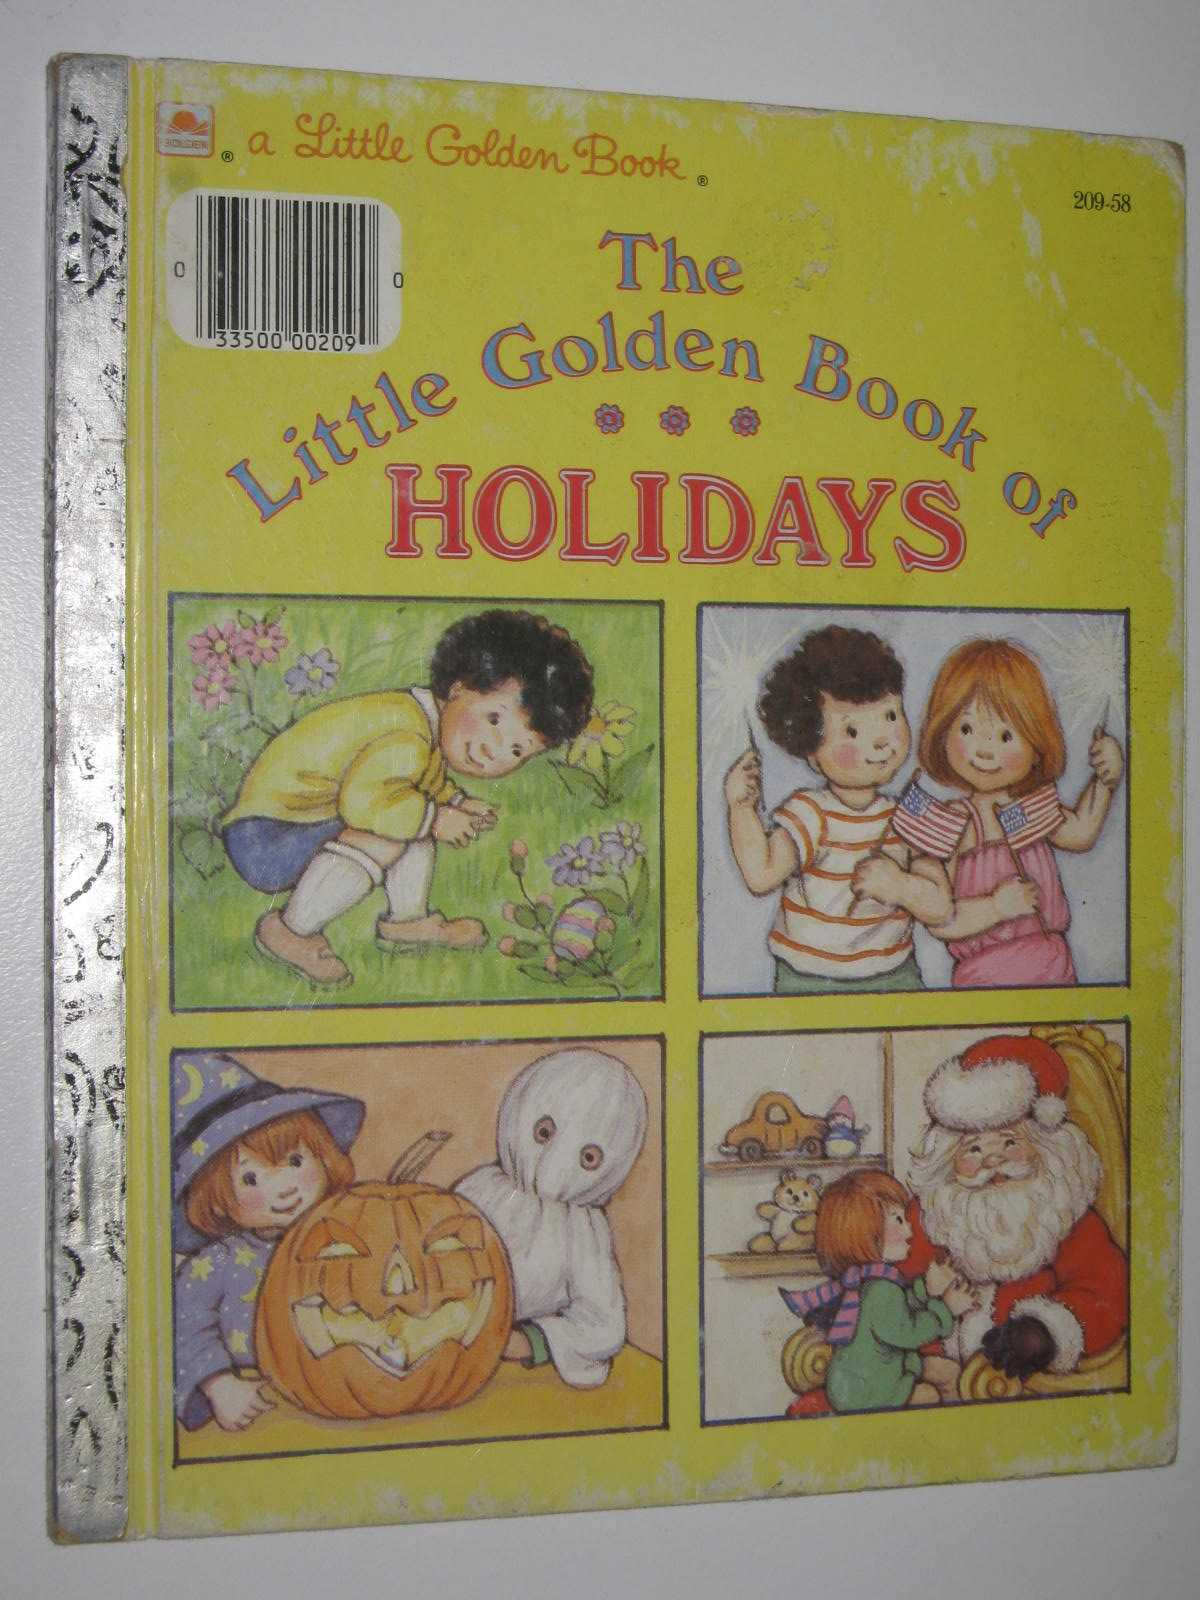 Image for The Little Golden Book Of Holidays - Little Golden Book Series #209-58